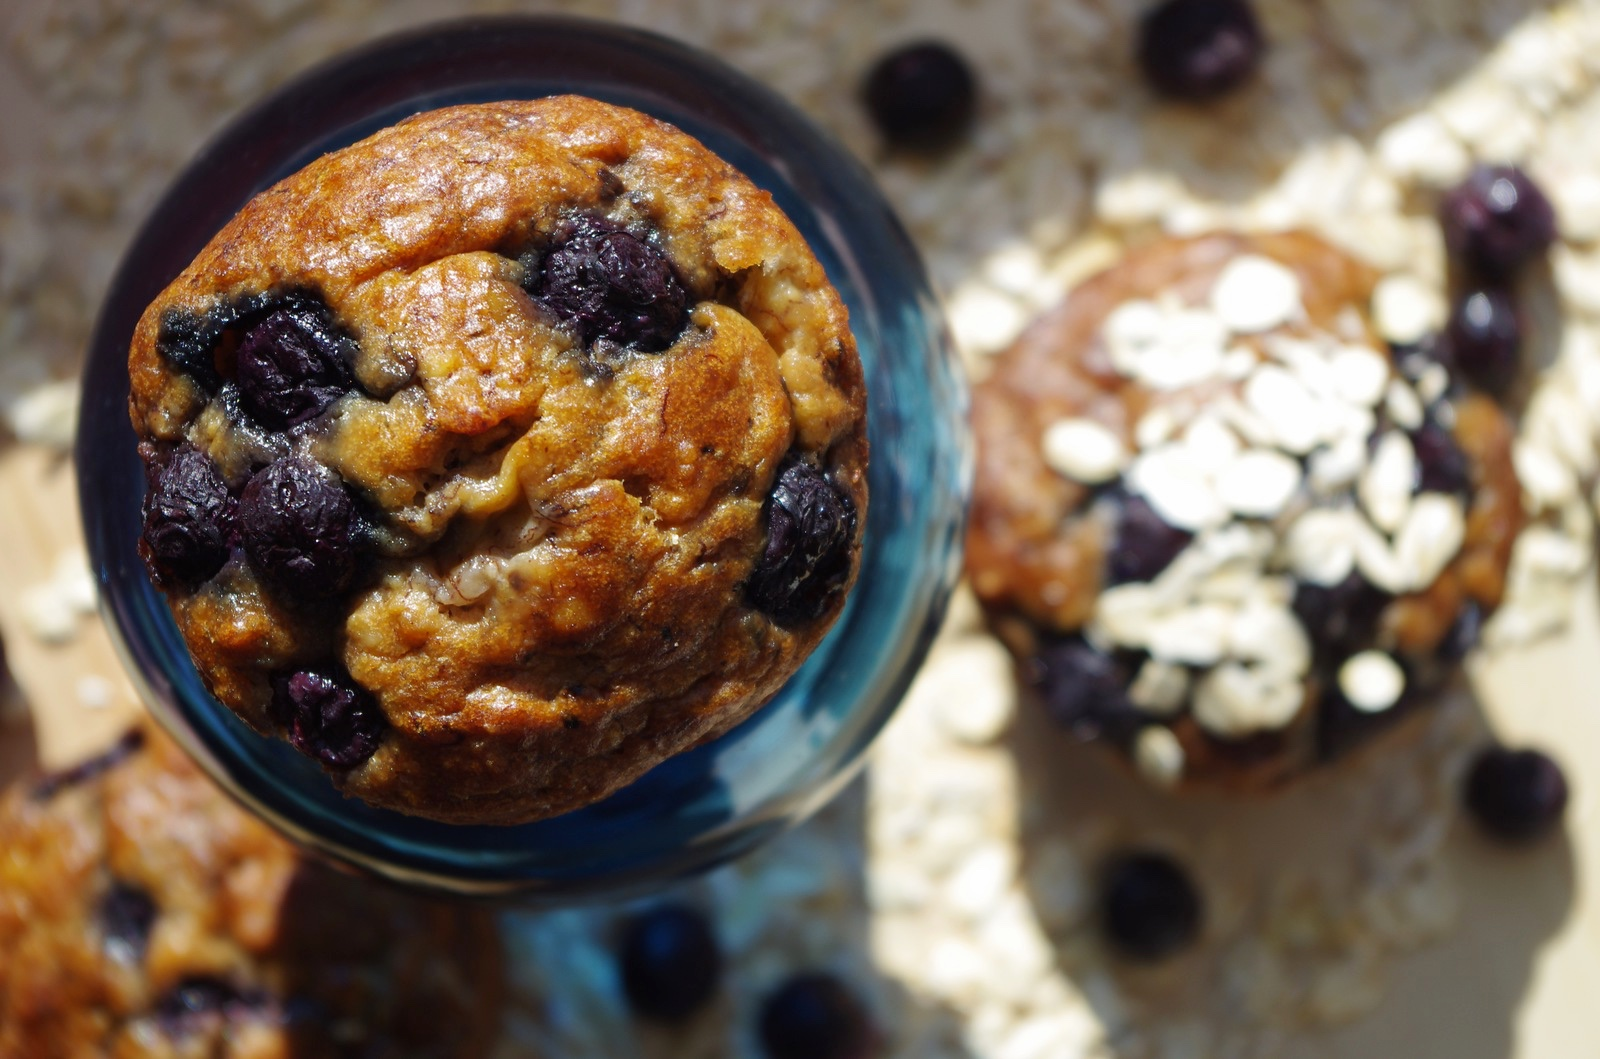 MUFFINS WITH BLUEBERRIES ON THE GO